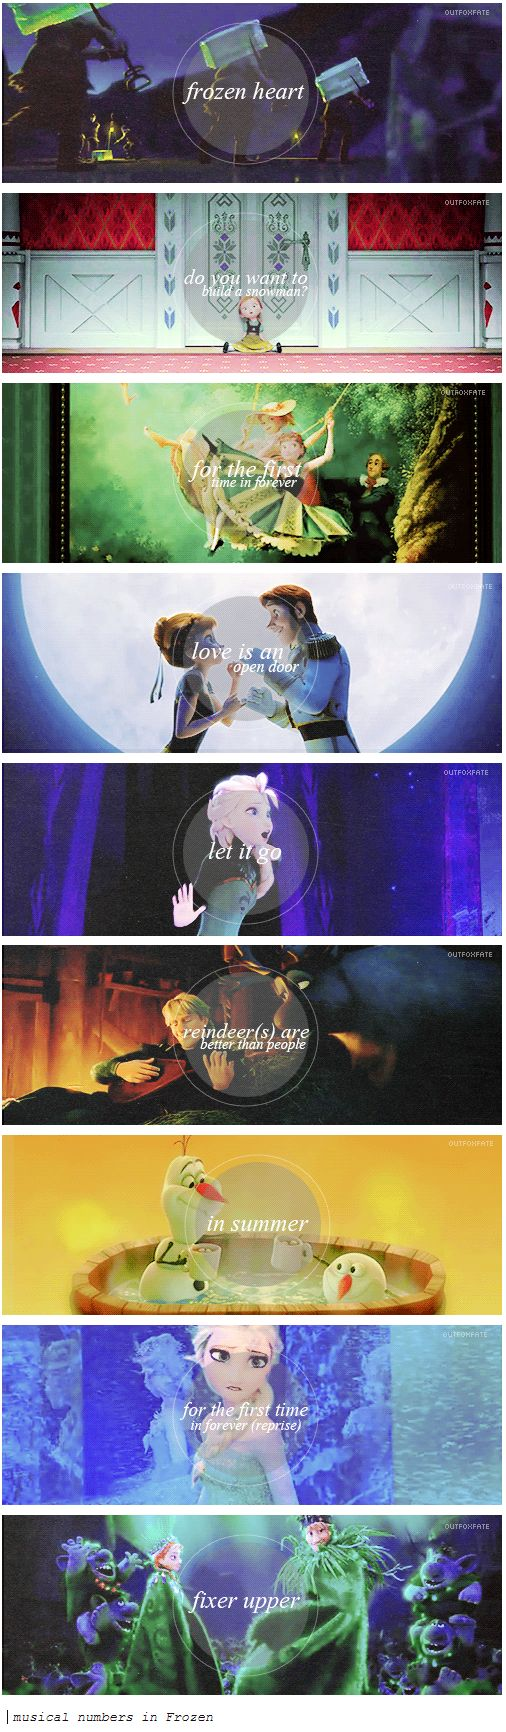 Frozen songs // Do you want to build a snowman is my favorite! Comment your fav! // LET IT GO!!!!